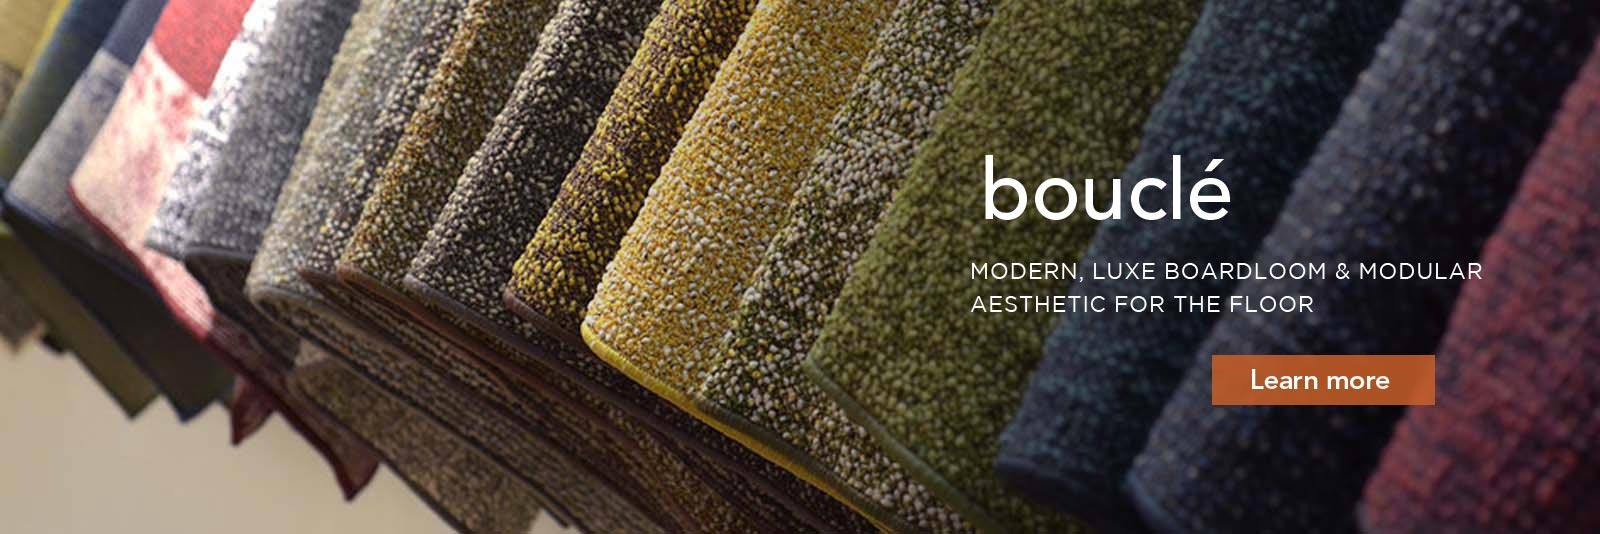 MODERN, LUXE BOARDLOOM & MODULAR AESTHETIC FOR THE FLOOR